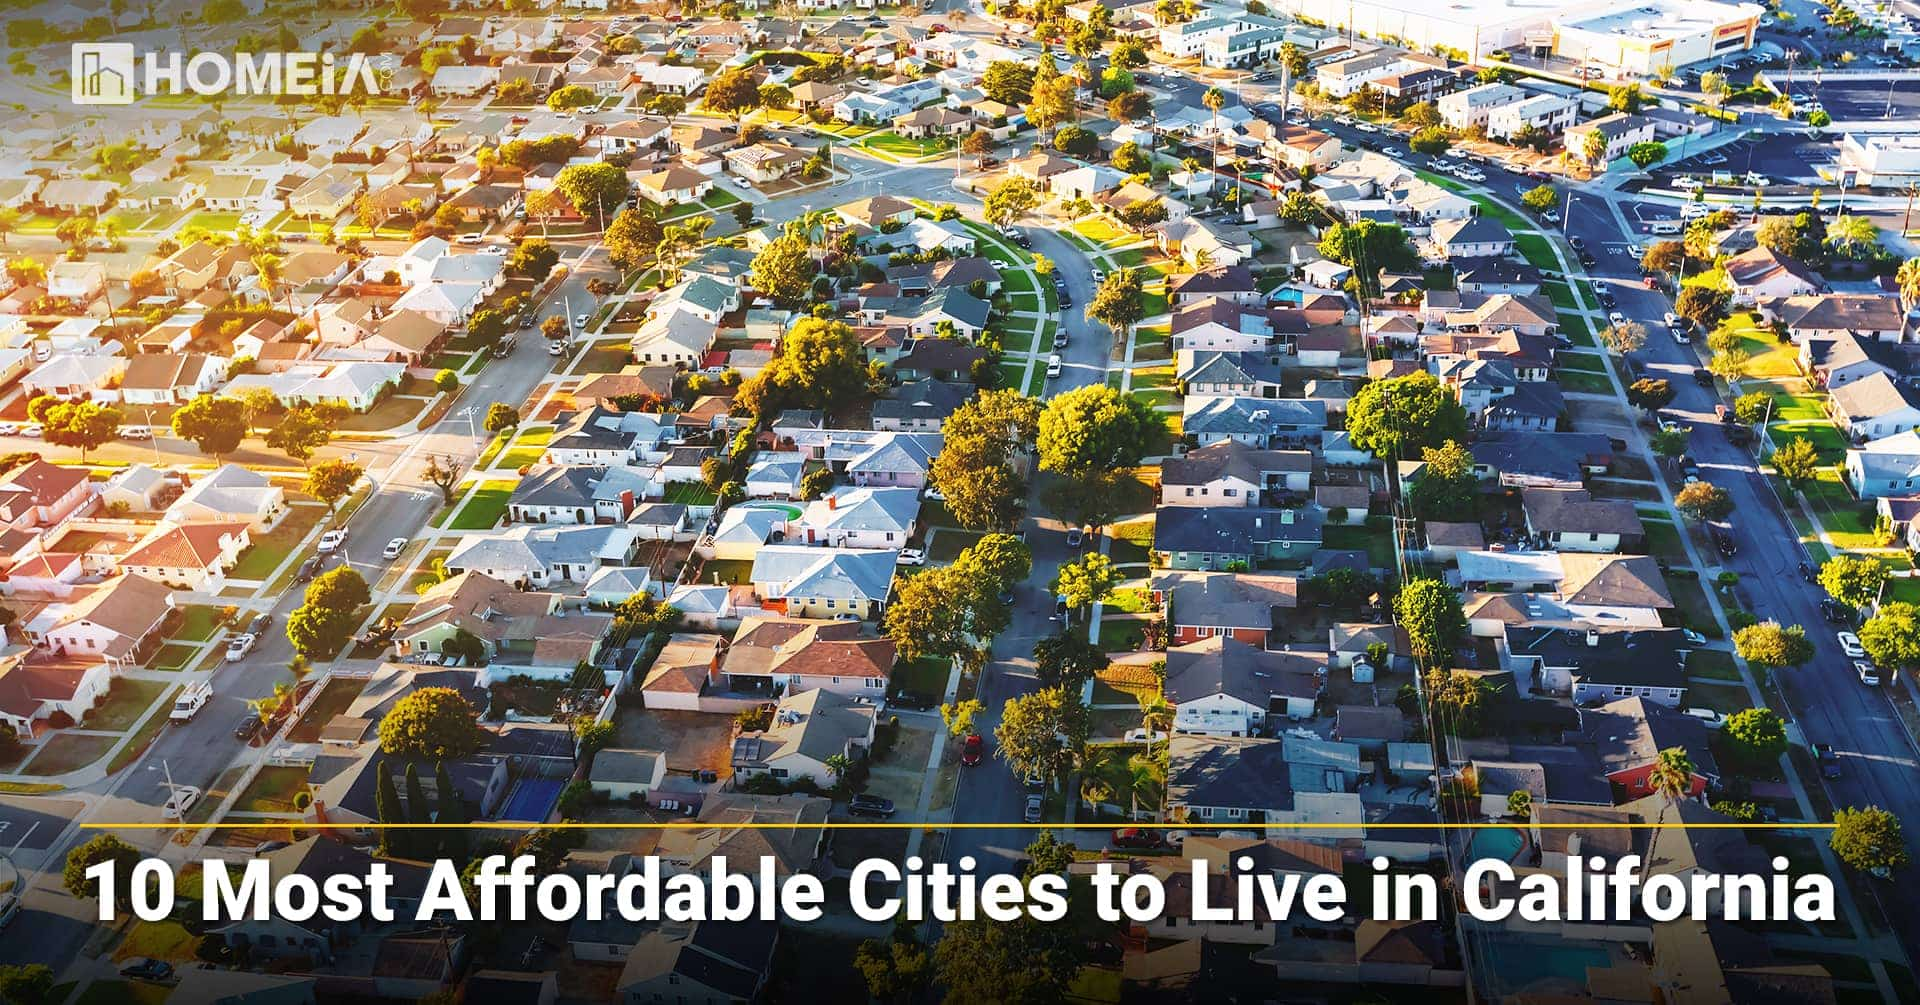 10 Most Affordable Cities to Live in California